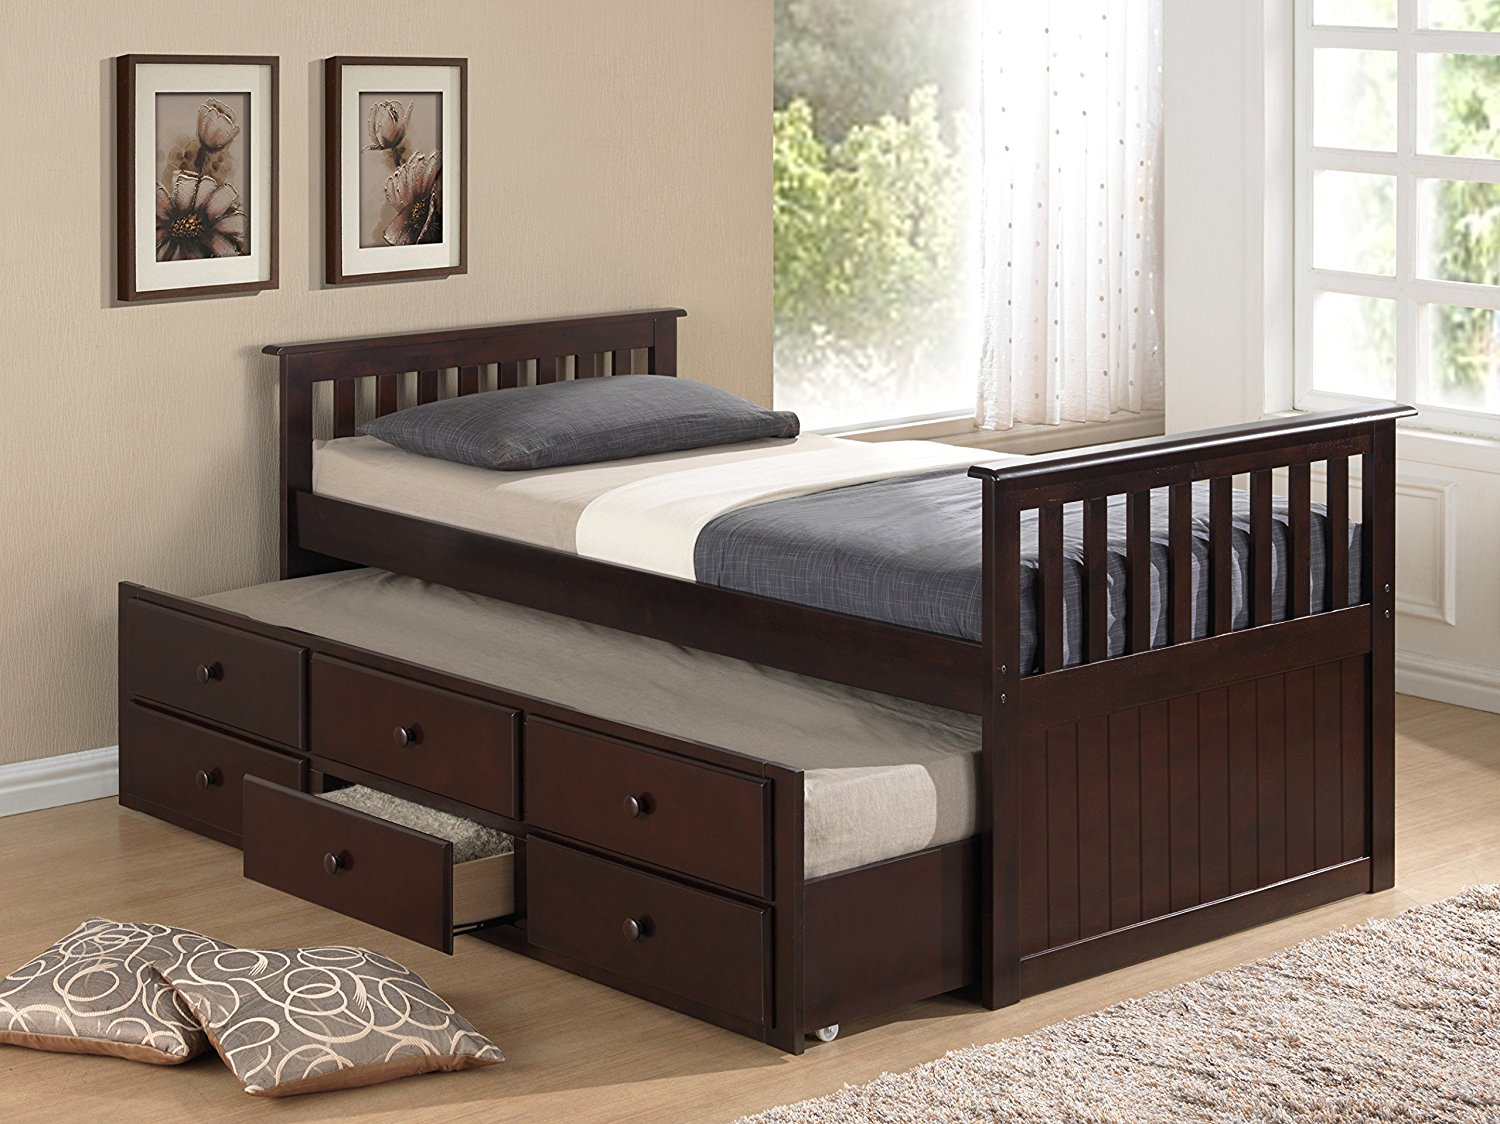 Image of: 6 Drawer Kids Bed